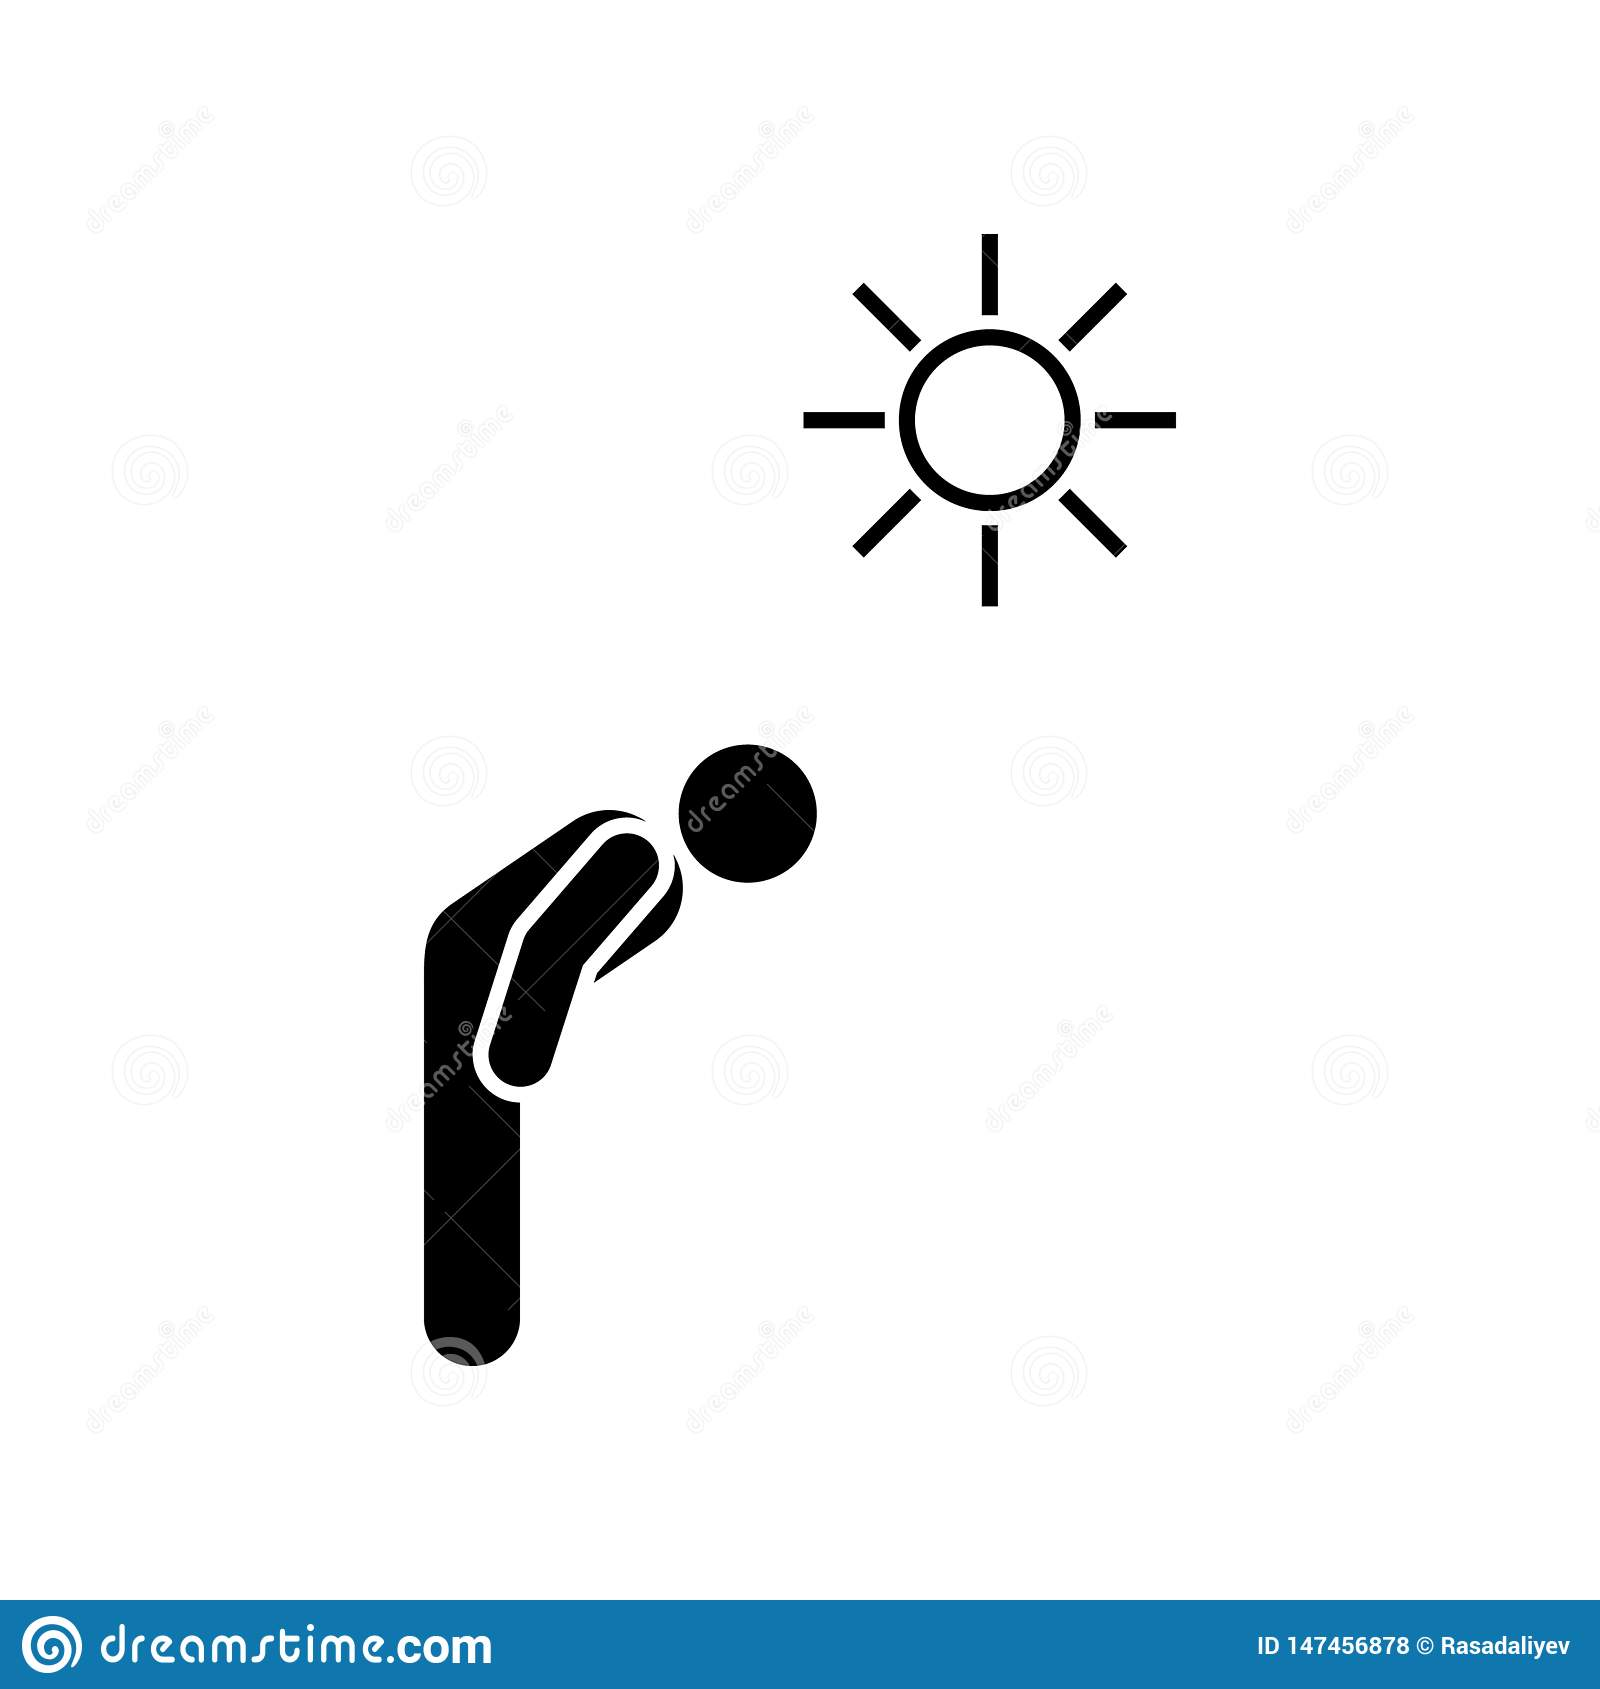 Man, sun, overheat icon. Element of systemic lupu icon. Premium quality graphic design icon. Signs and symbols collection icon for